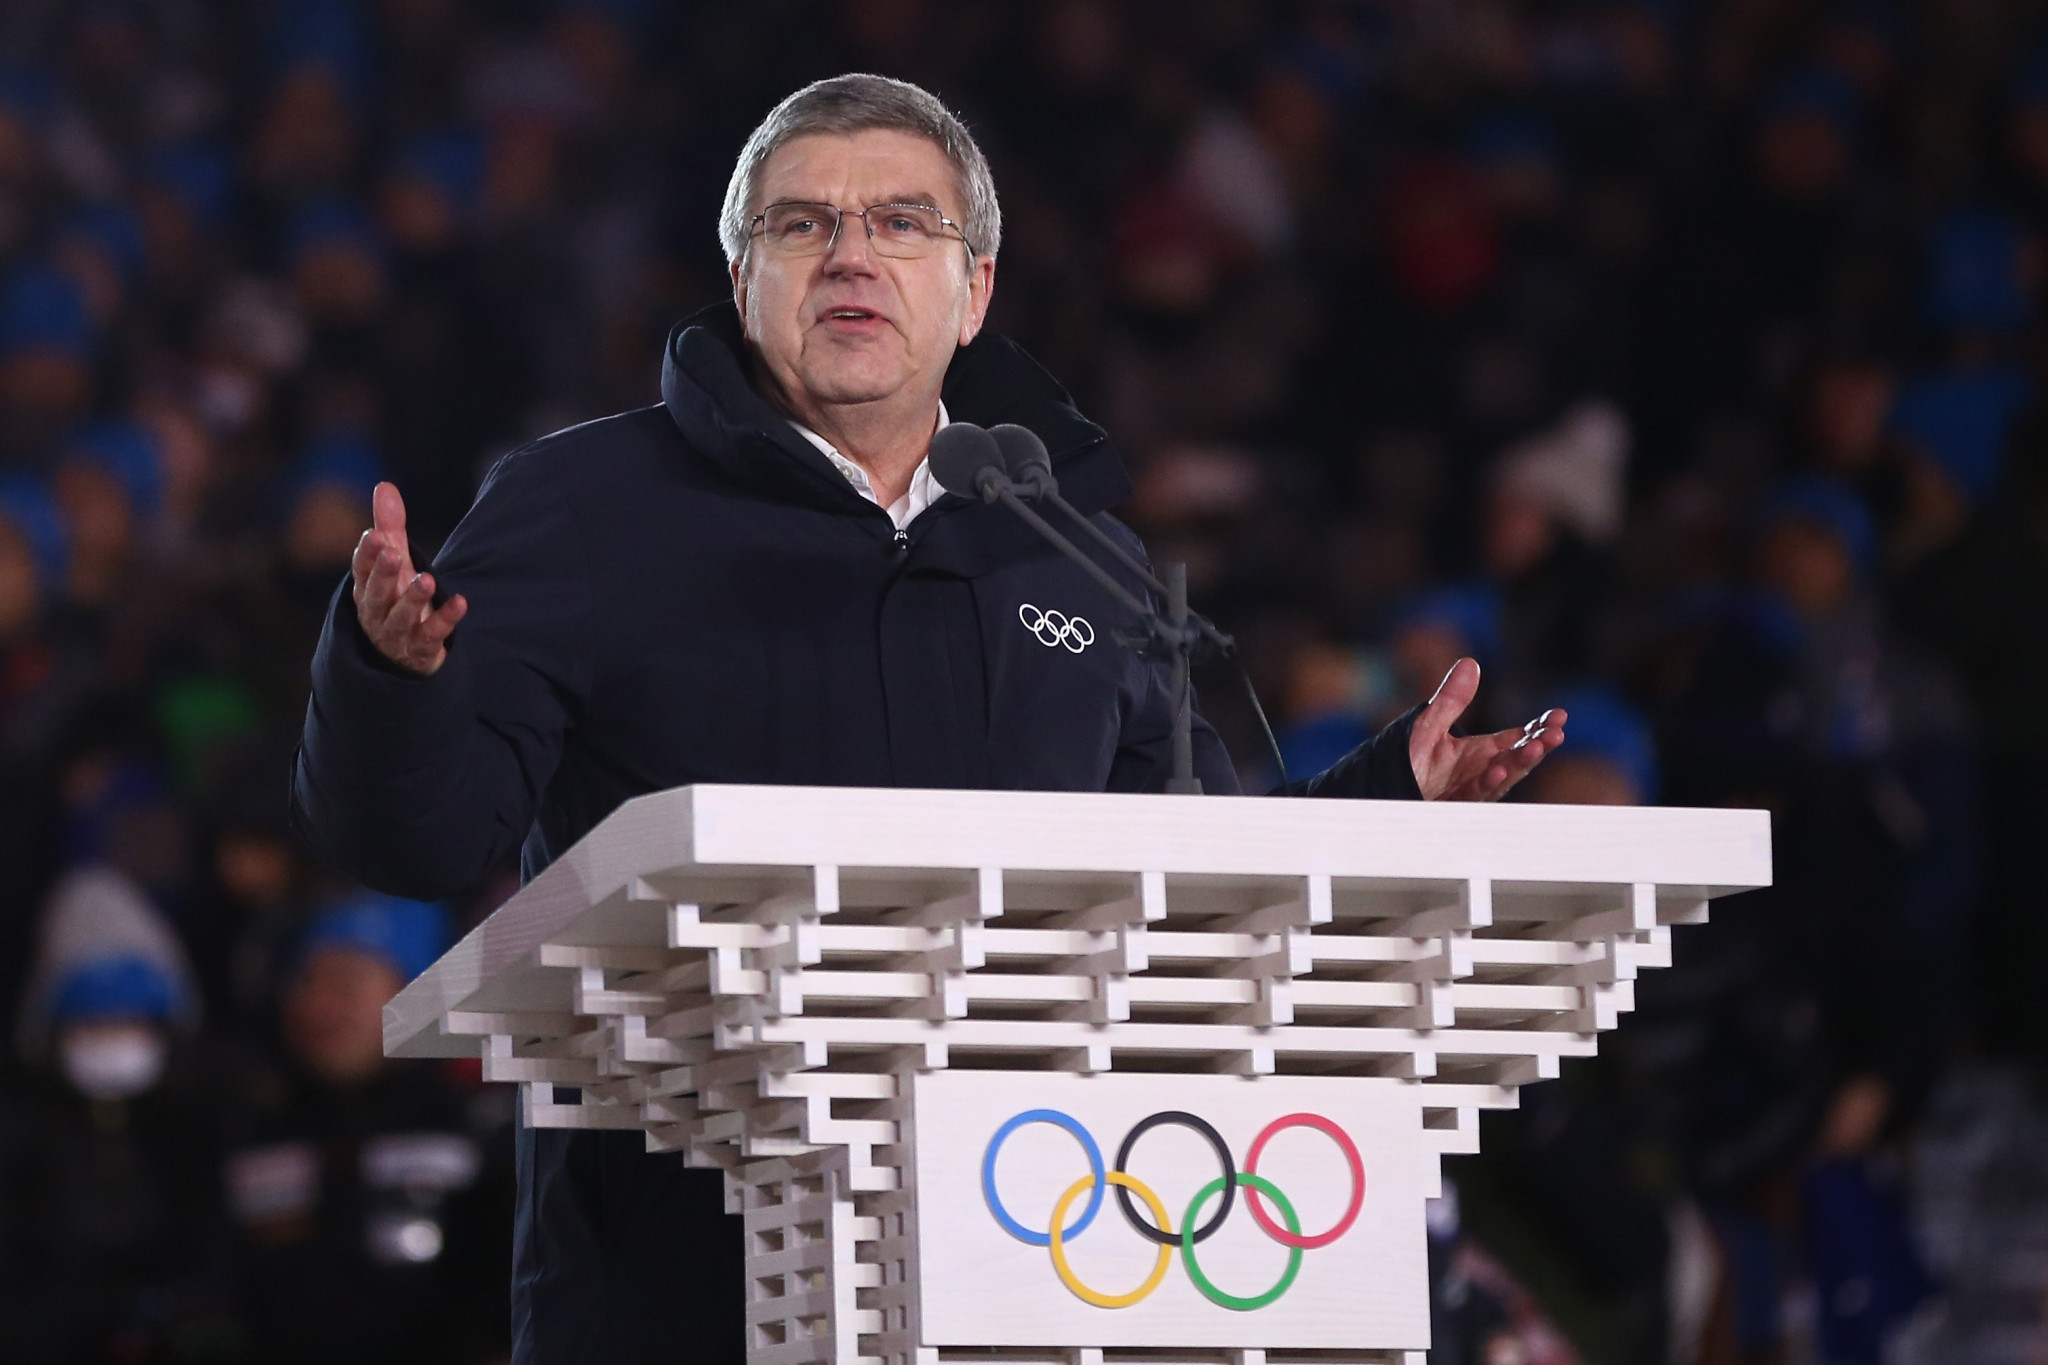 IOC President Thomas Bach officially declared the Pyeongchang 2018 Winter Olympics closed ©Getty Images